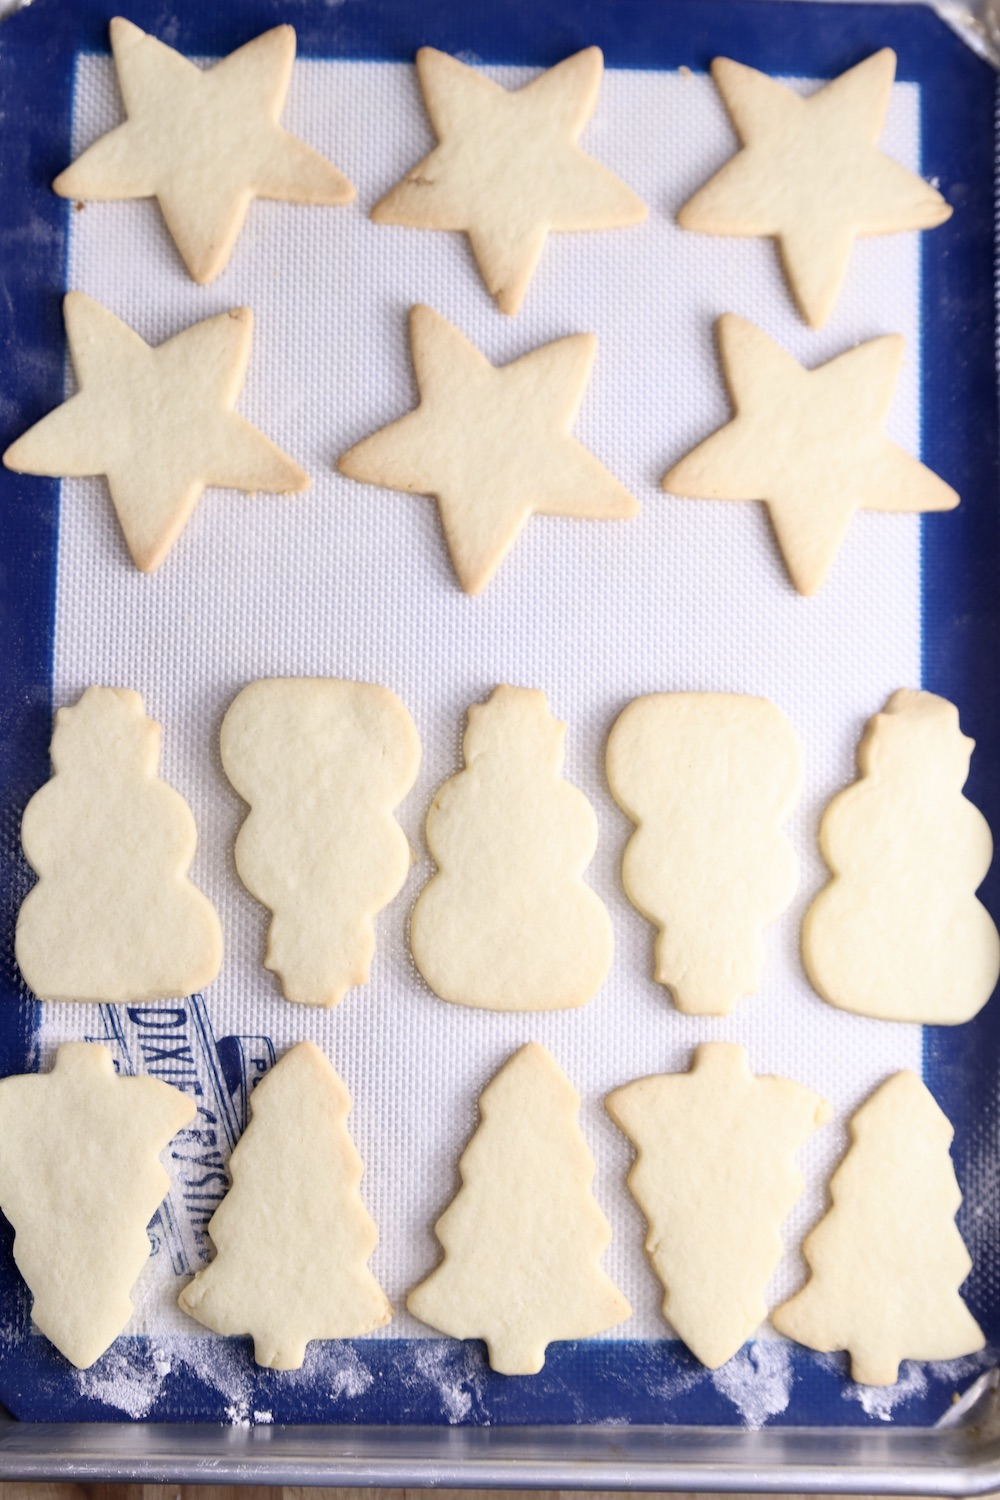 Baked Cut out sugar cookies on a baking sheet. Stars, snowmen and trees.